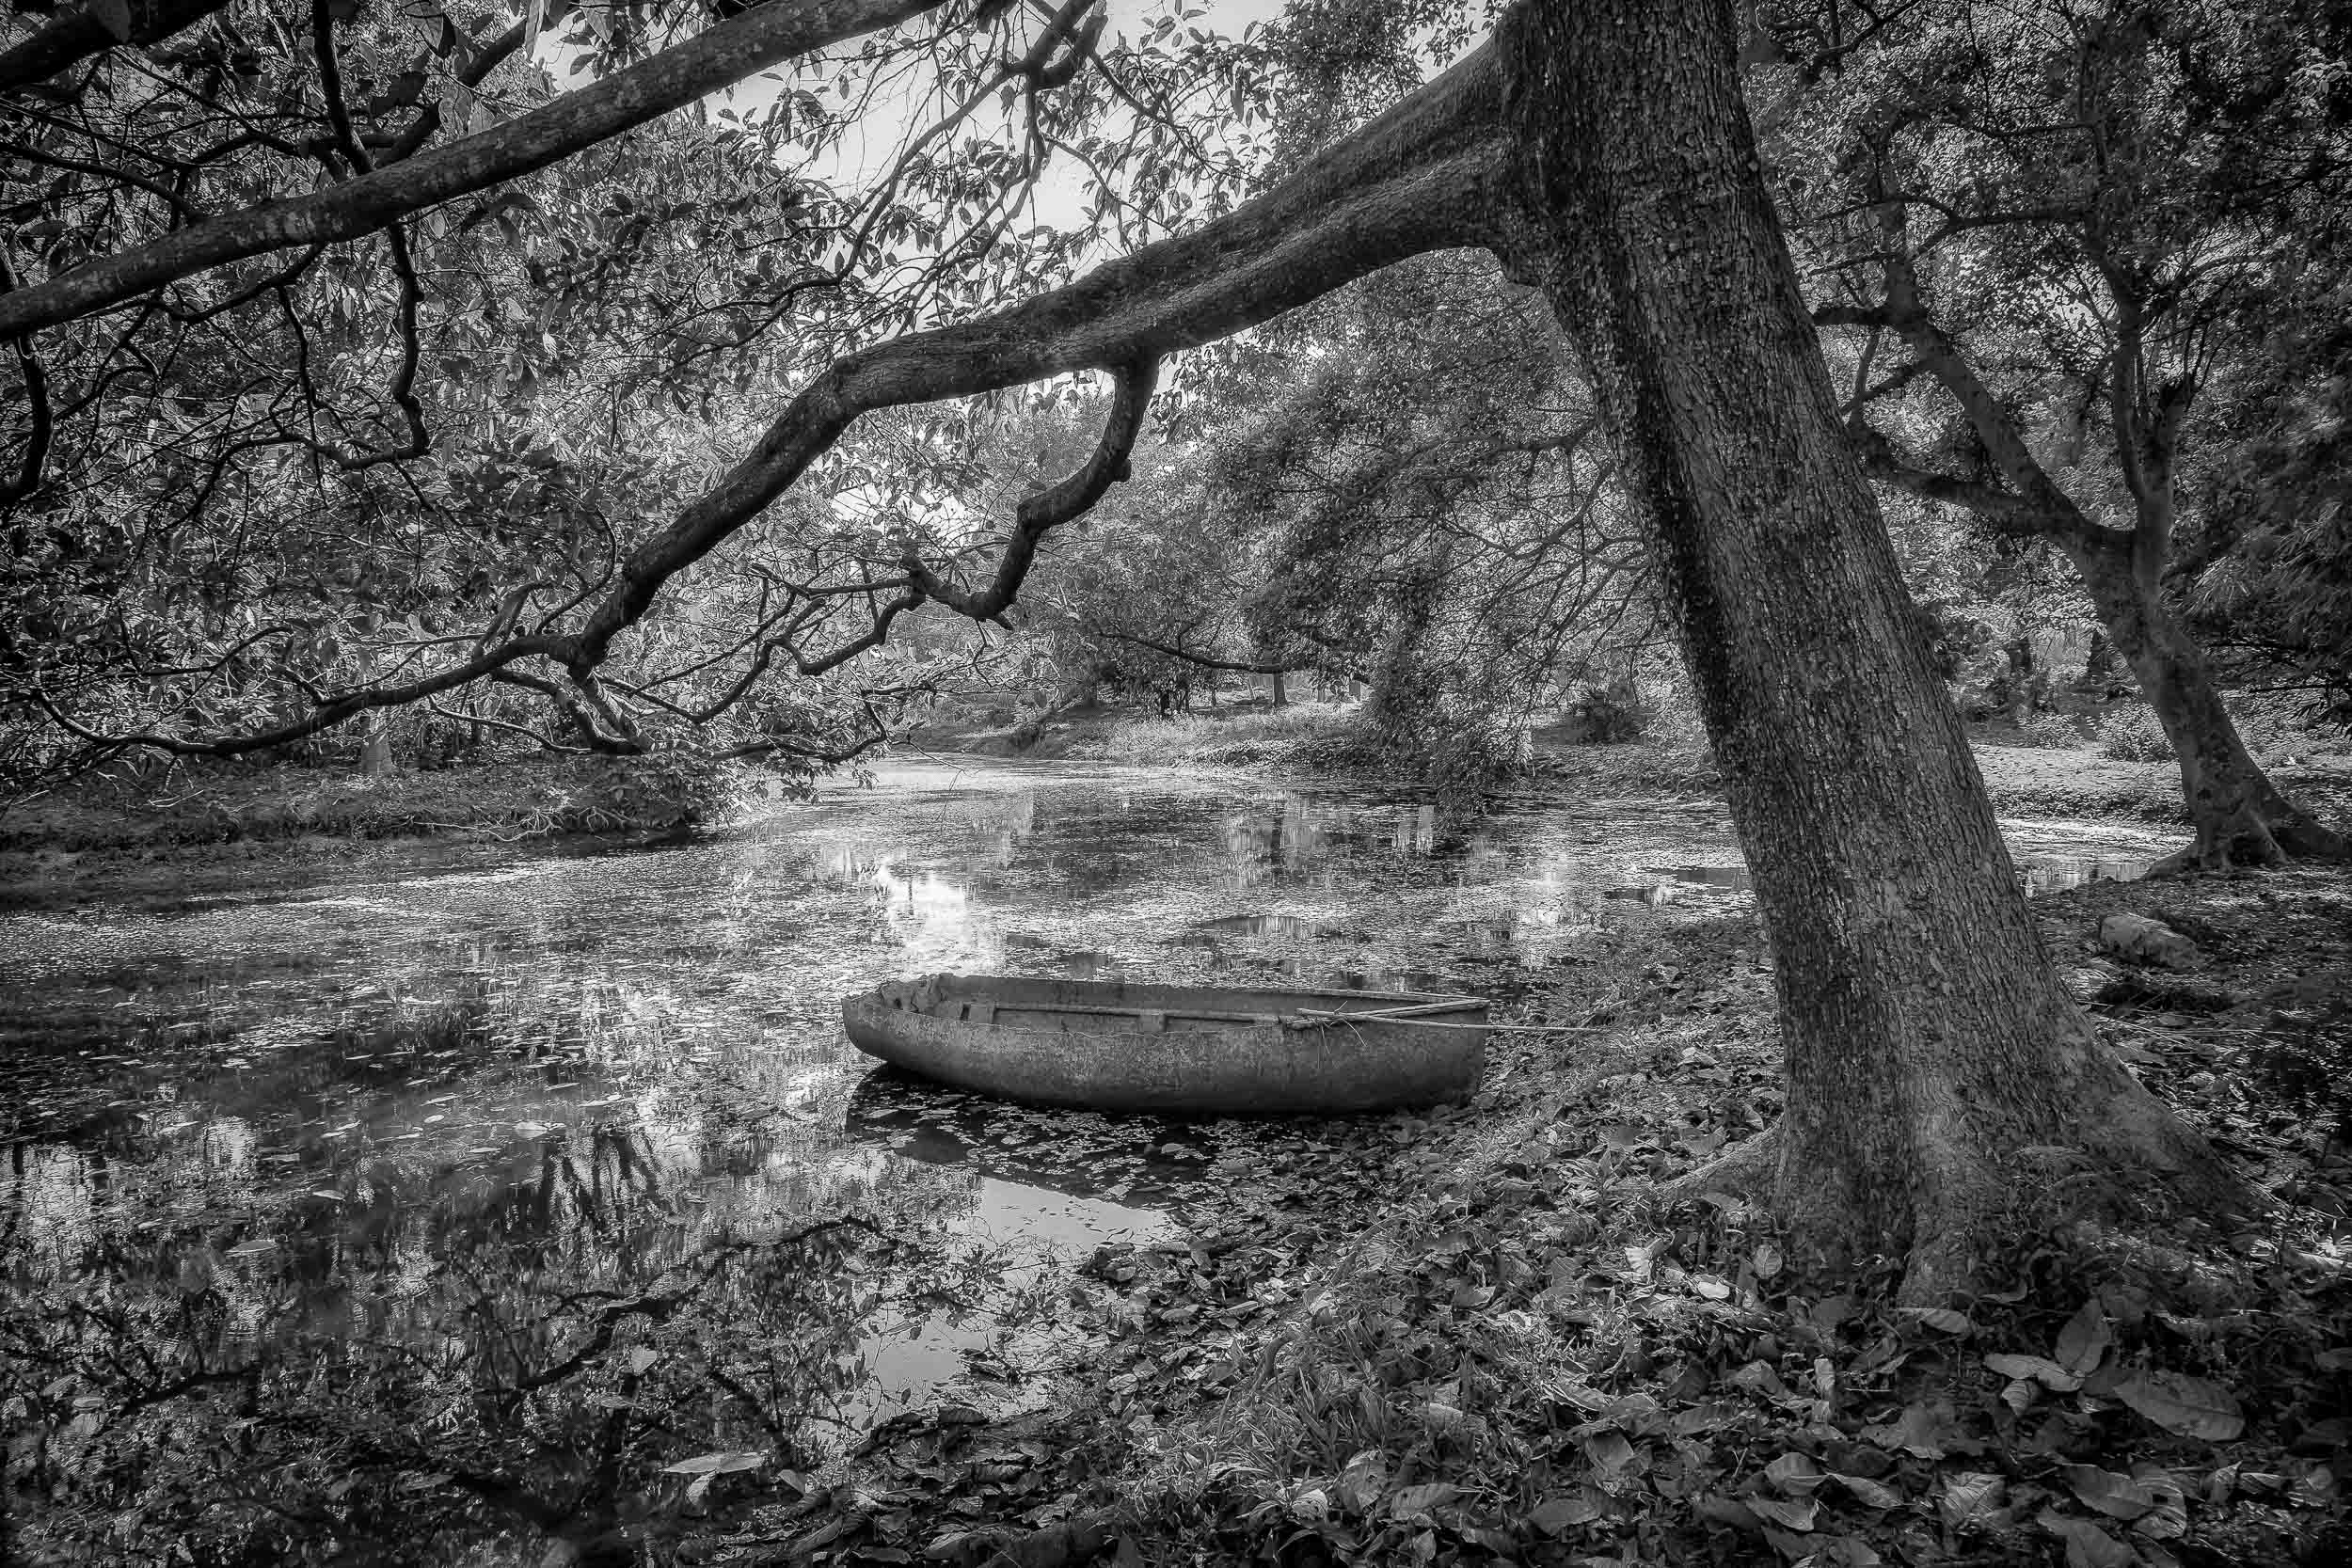 An    old boat   , under    dappled light   , in the grounds of the    Botanical Gardens    in    Kolkata   , India makes for a very idyllic and pictureseque image.